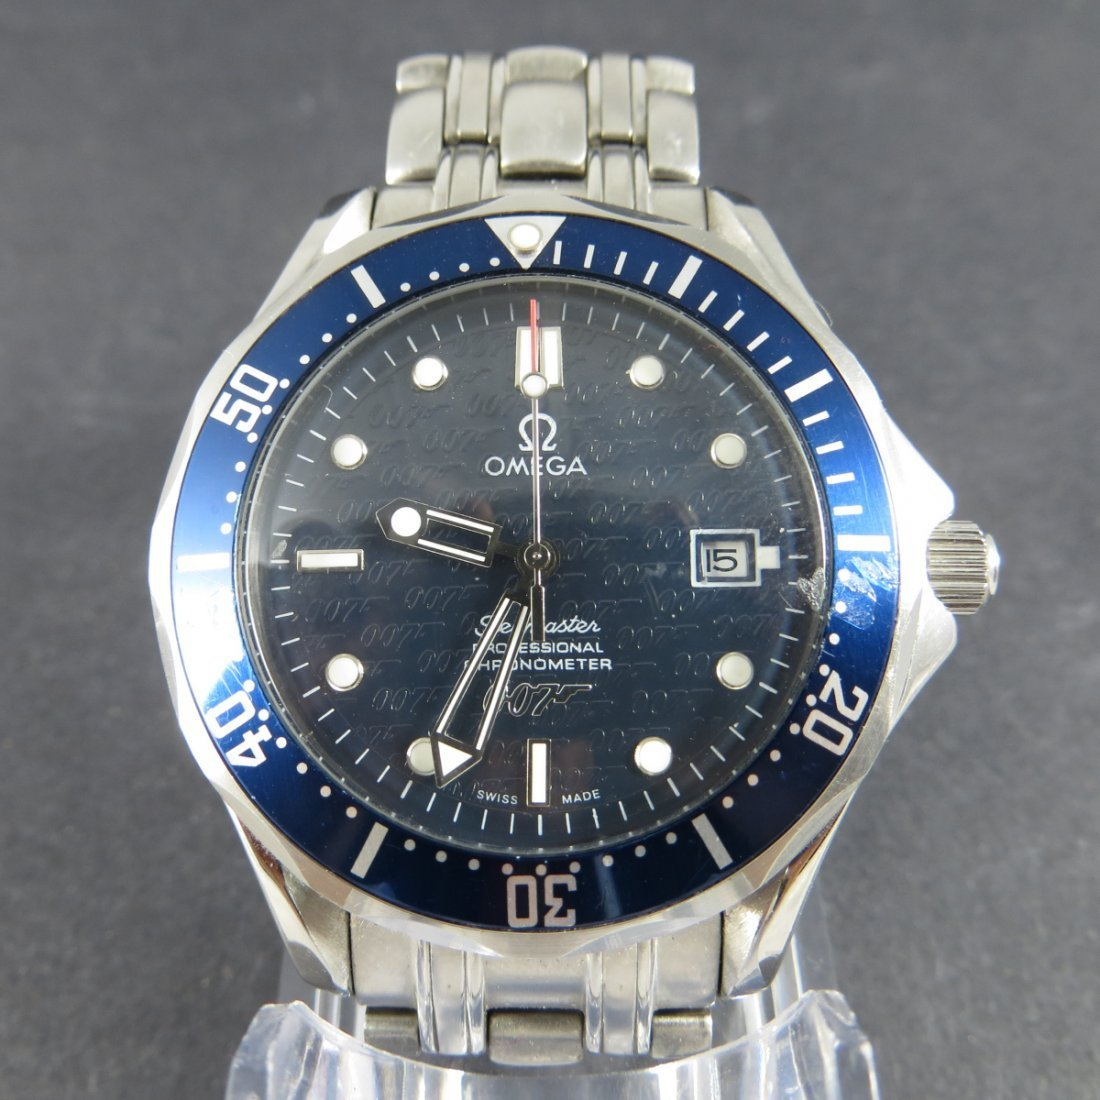 Faux Omega Stainlesssteel Watch